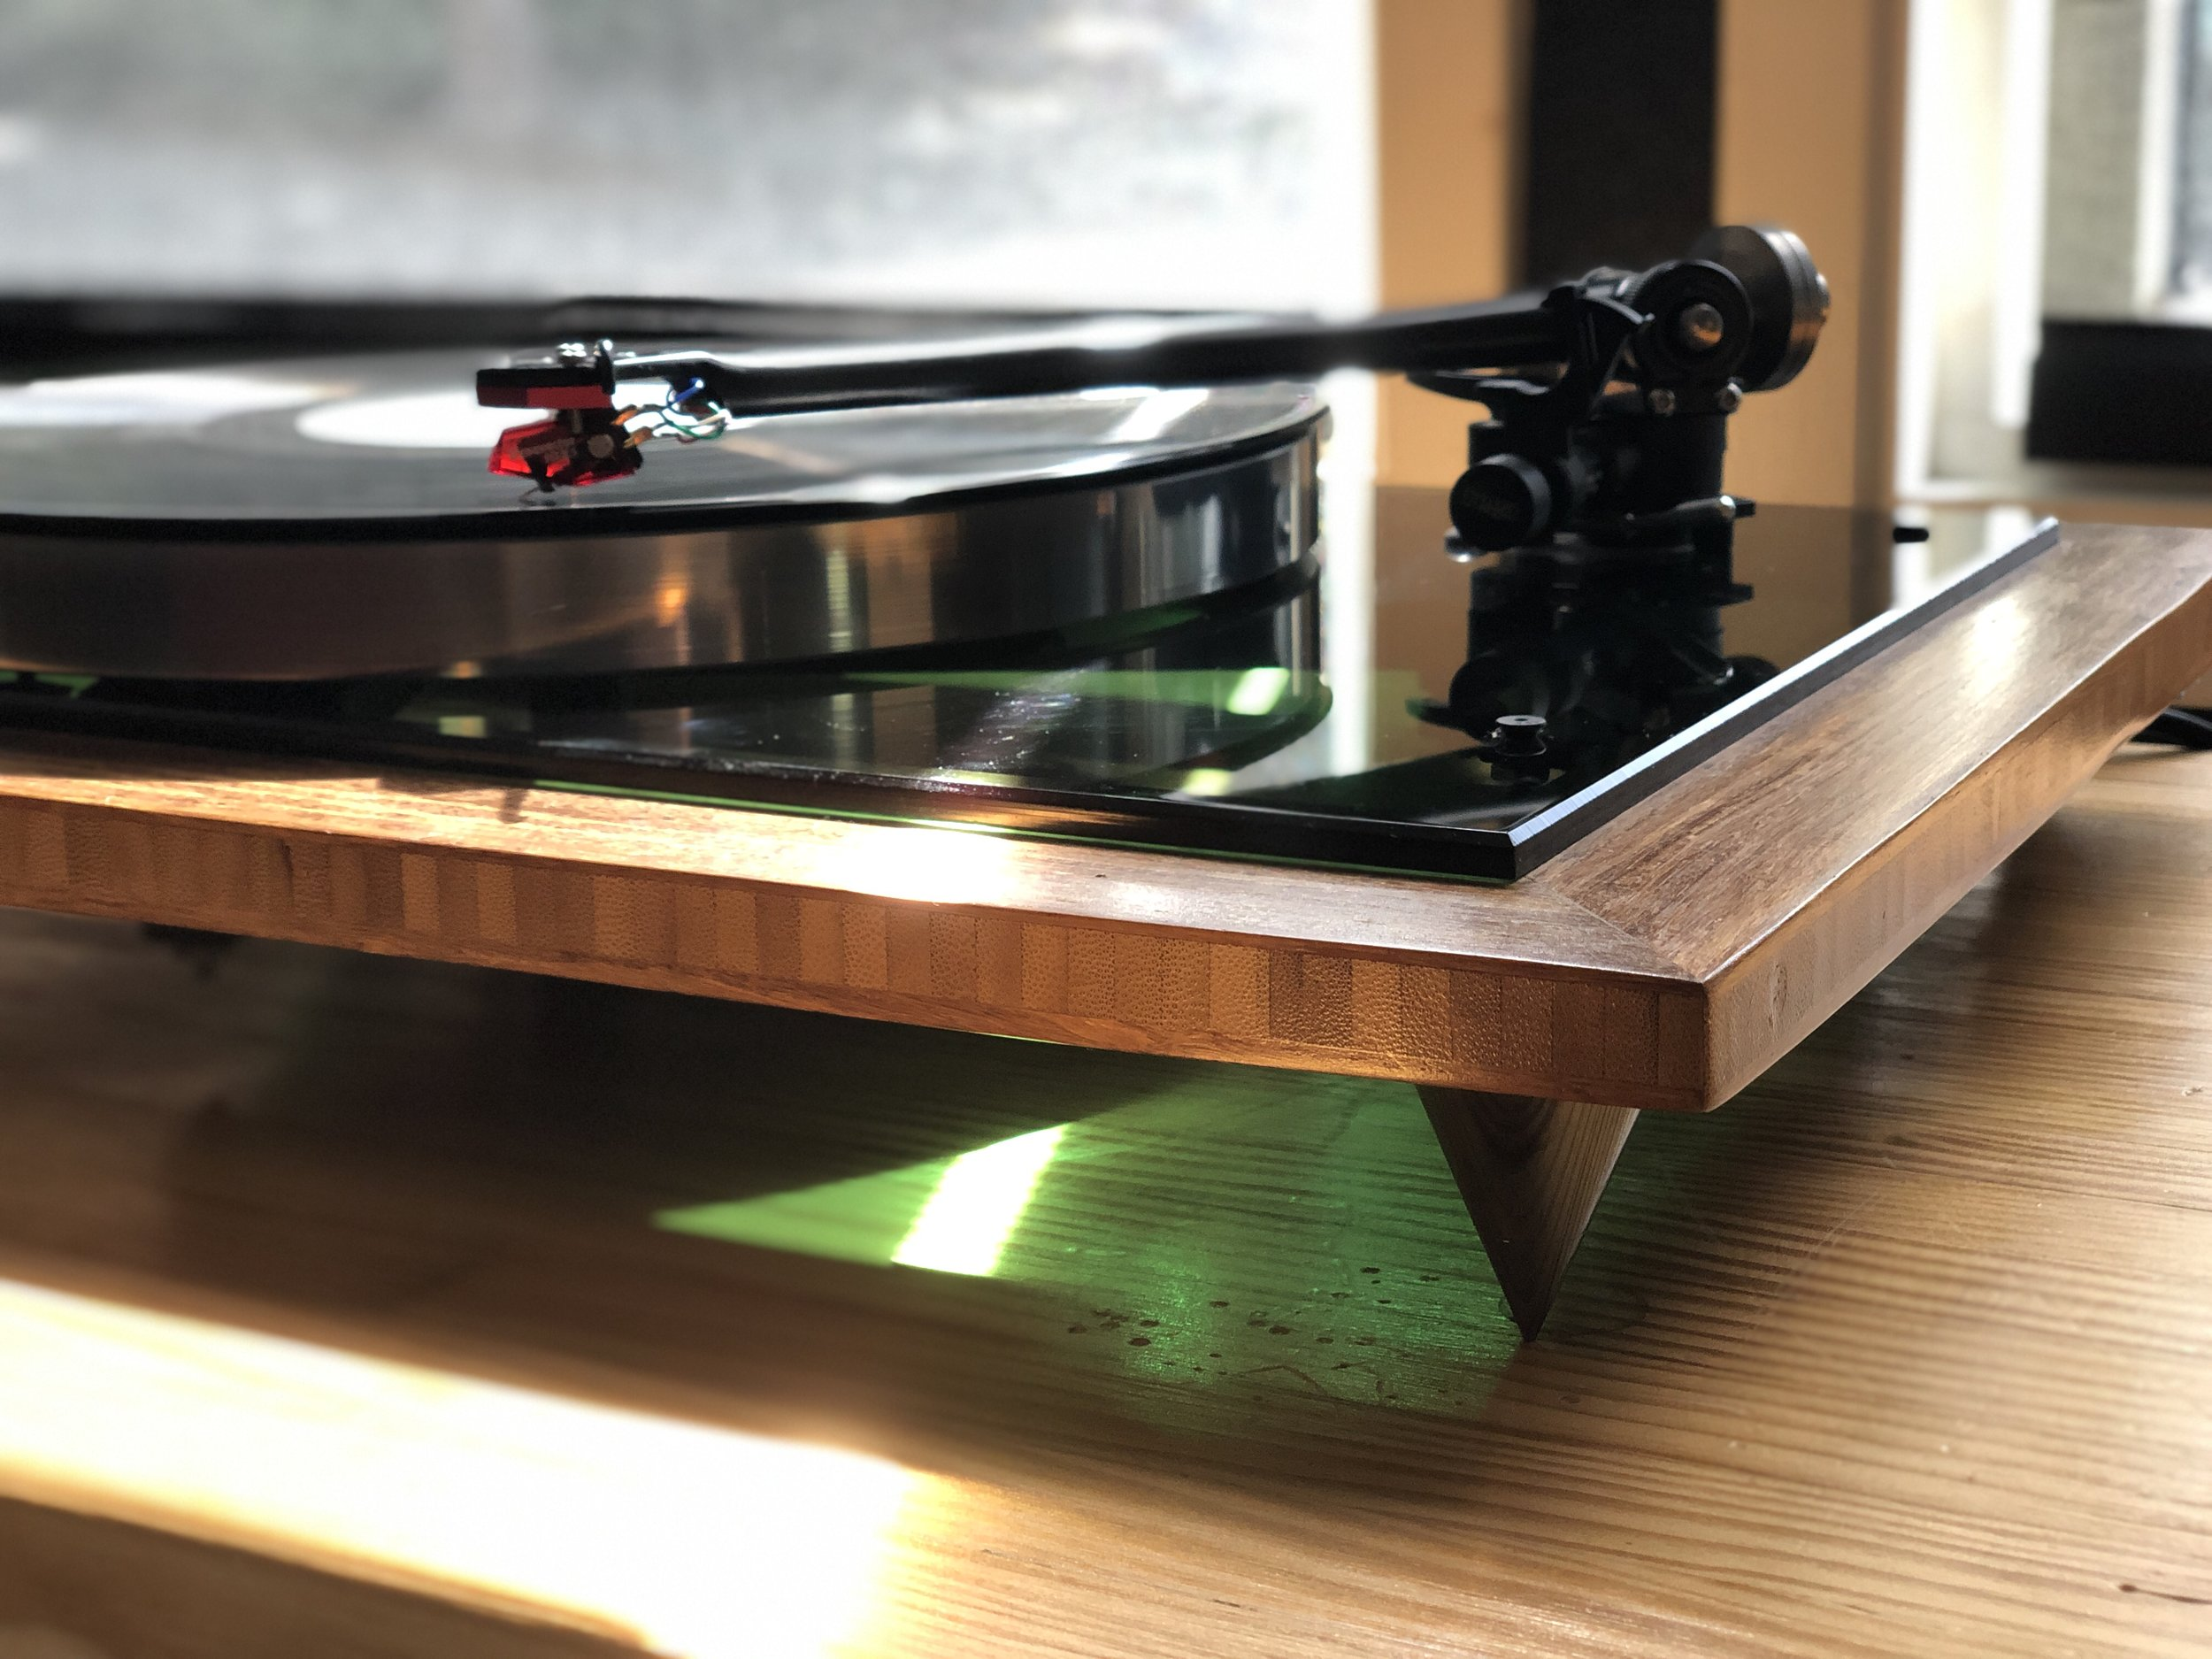 Green  Acoustic Research T-bar, platter, sub-platter, green plexiglass top plate, Rega 303 tonearm, Hurst 300 motor, bamboo custom built base, rocker on/off switch, 2.5 inch metal spikes, custom dust-cover. $999 w/out cartridge (shown with Dynavector 10X5 = $749).